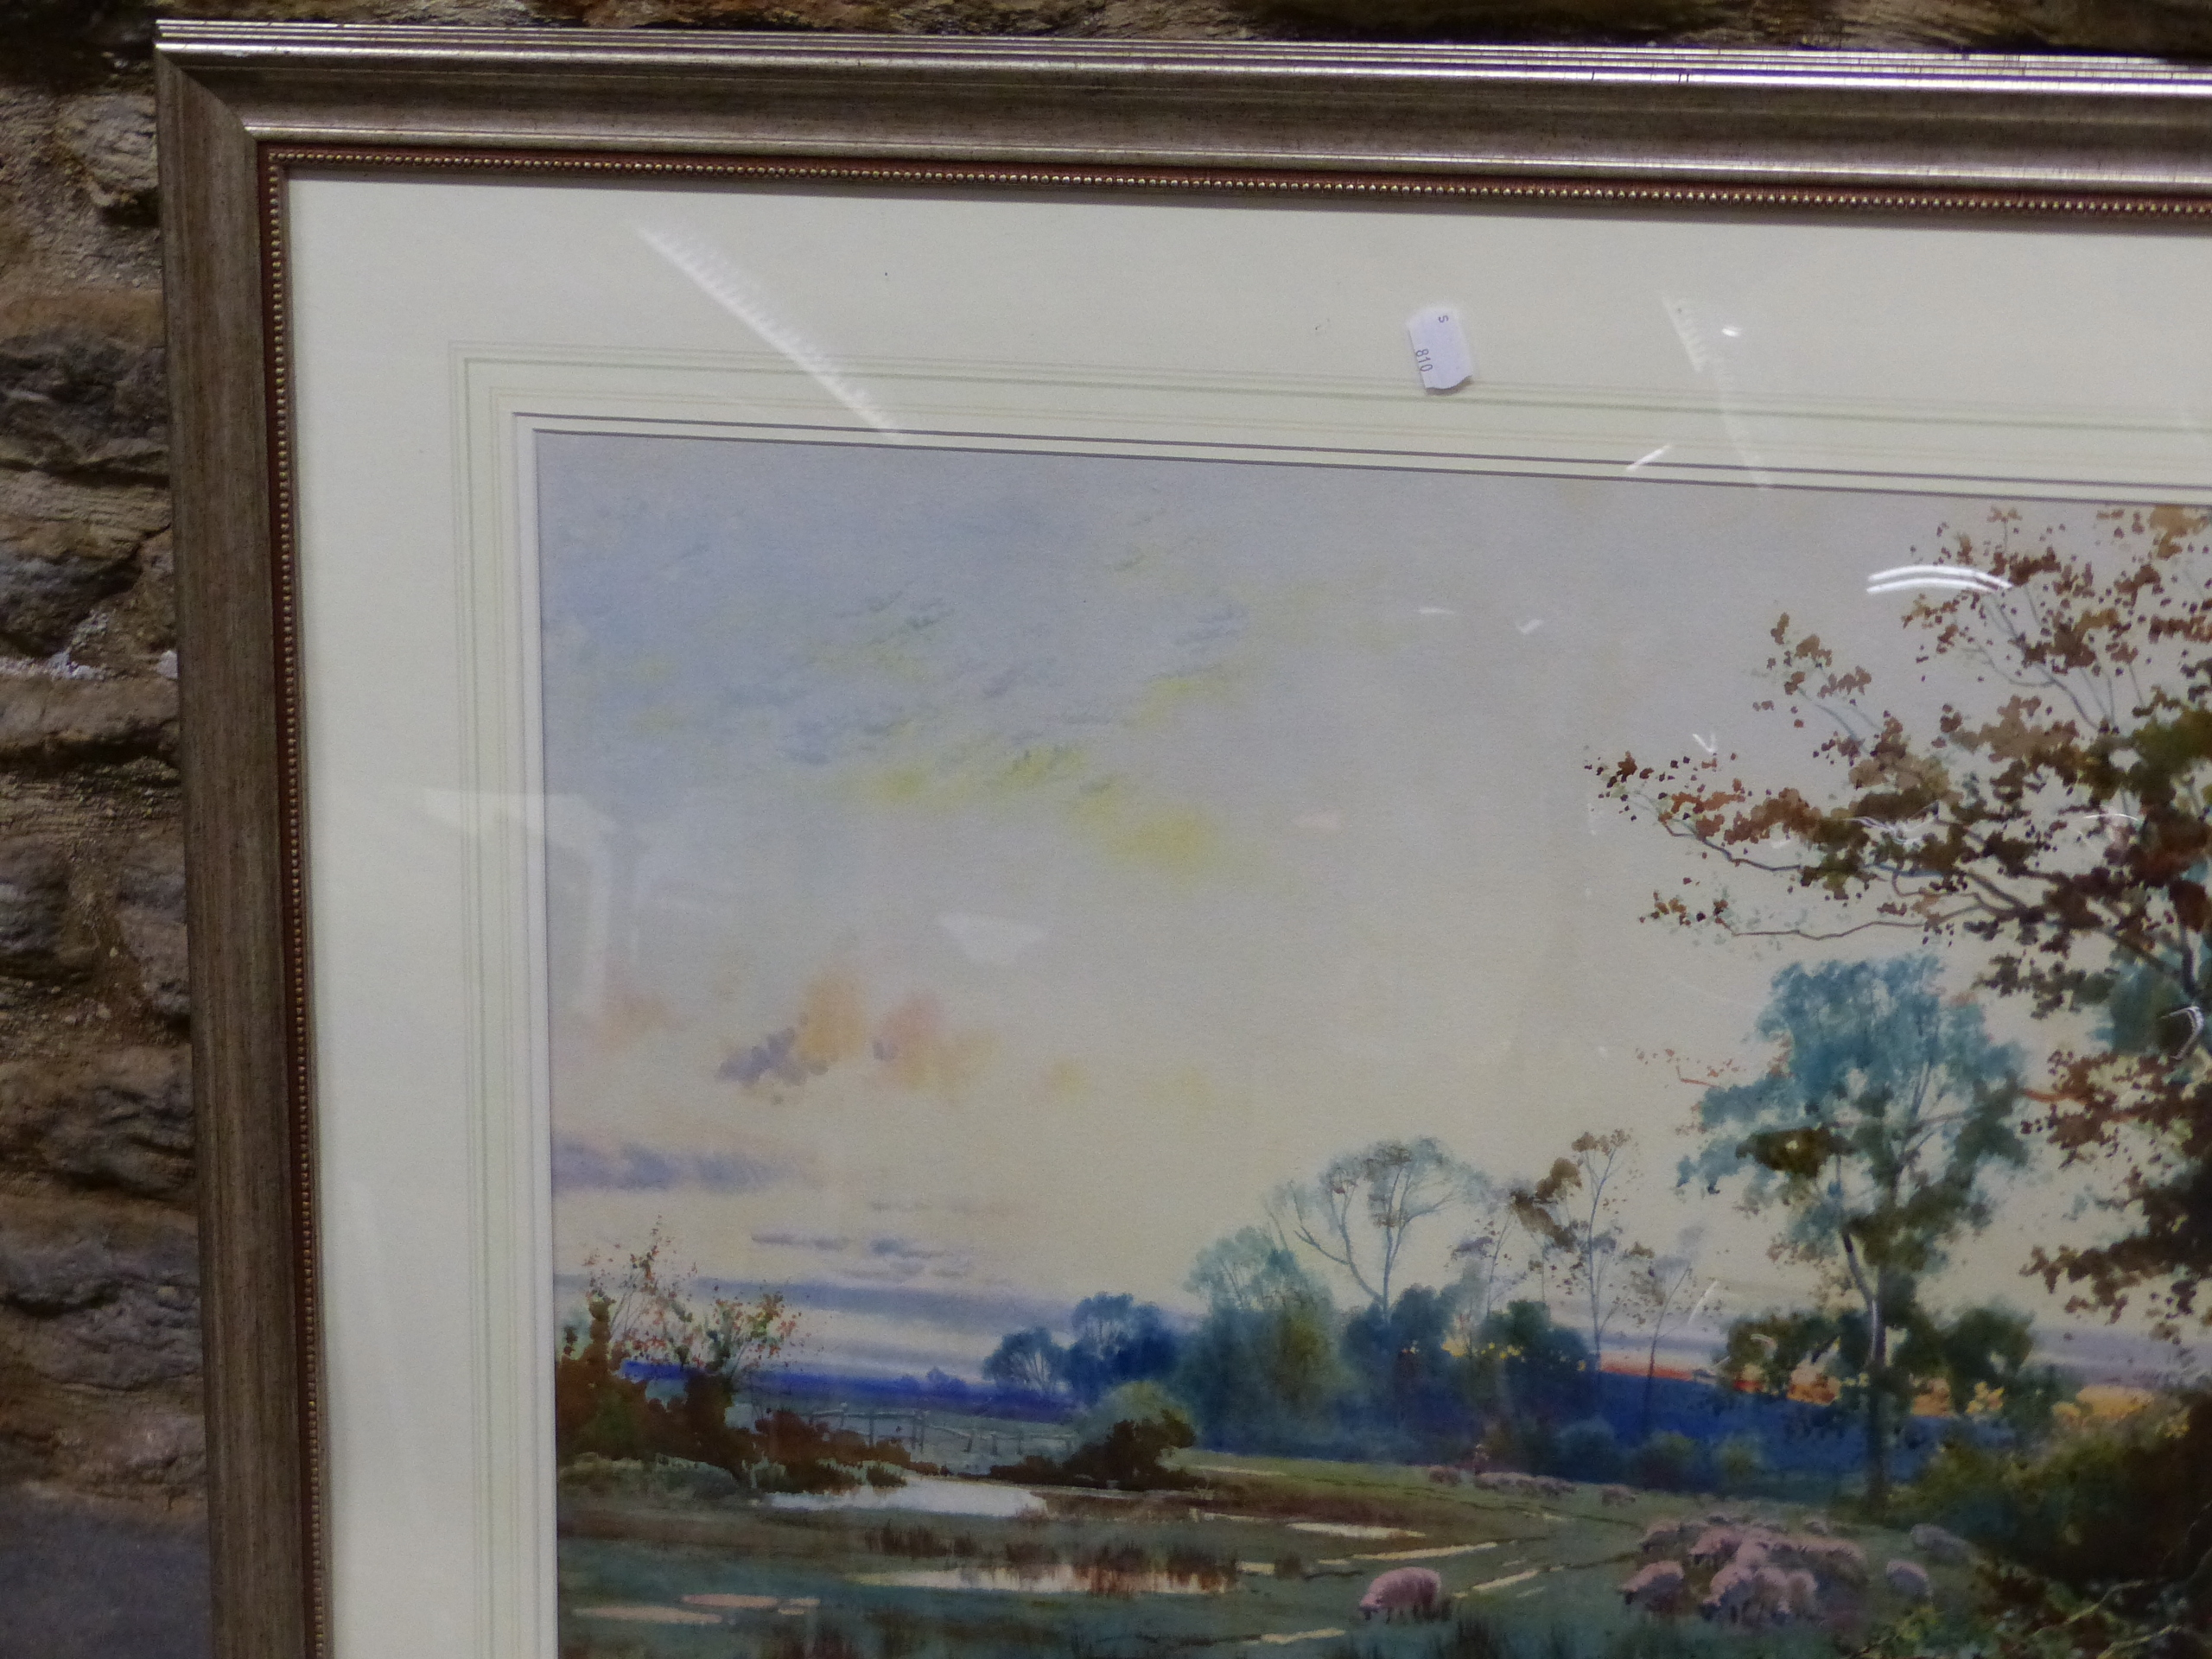 WILLIAM MATHISON (1853 - 1926) SHEEP IN THE WATER MEADOW. SIGNED WATERCOLOUR 48 x 72cm - Image 6 of 21